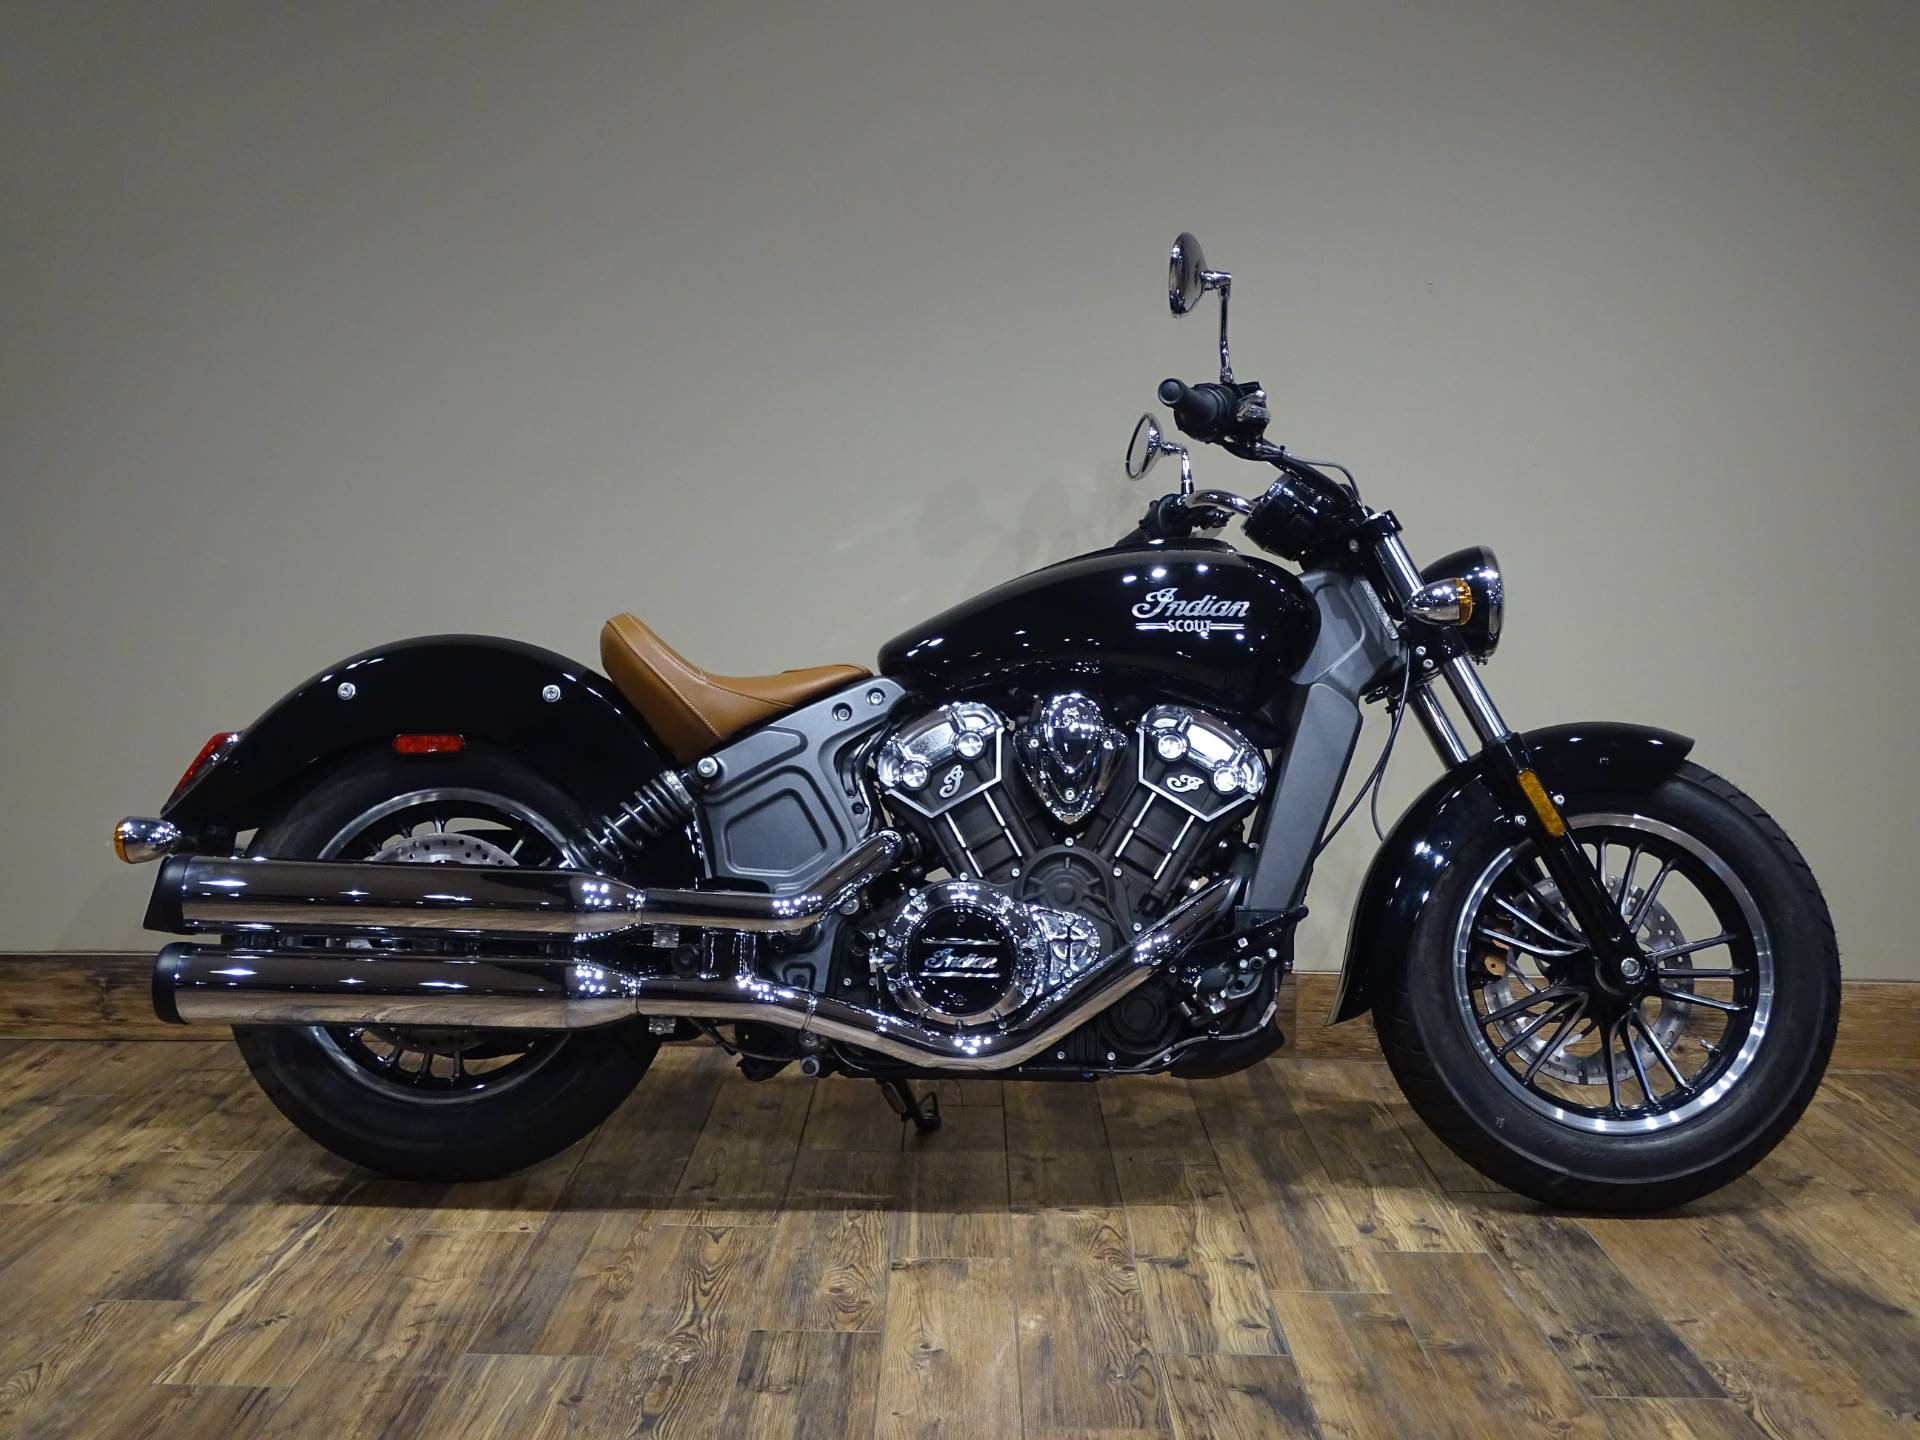 New 2019 Indian Scout Motorcycles In Saint Paul Mn Stock Number